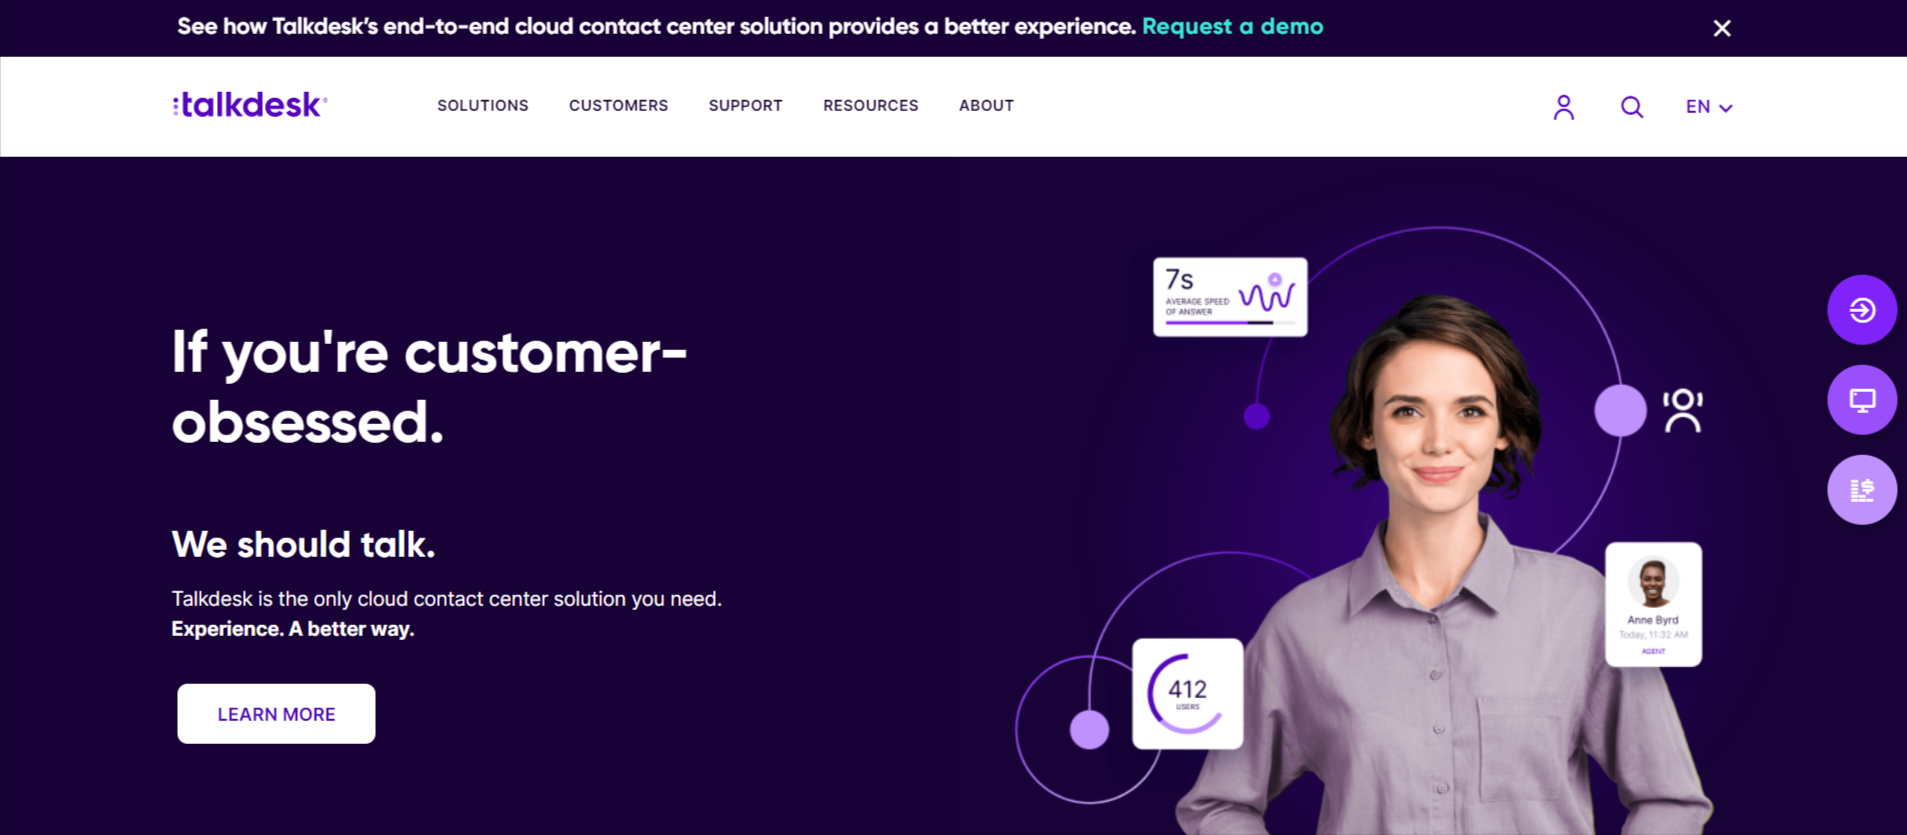 Talkdesk software- customer automation services